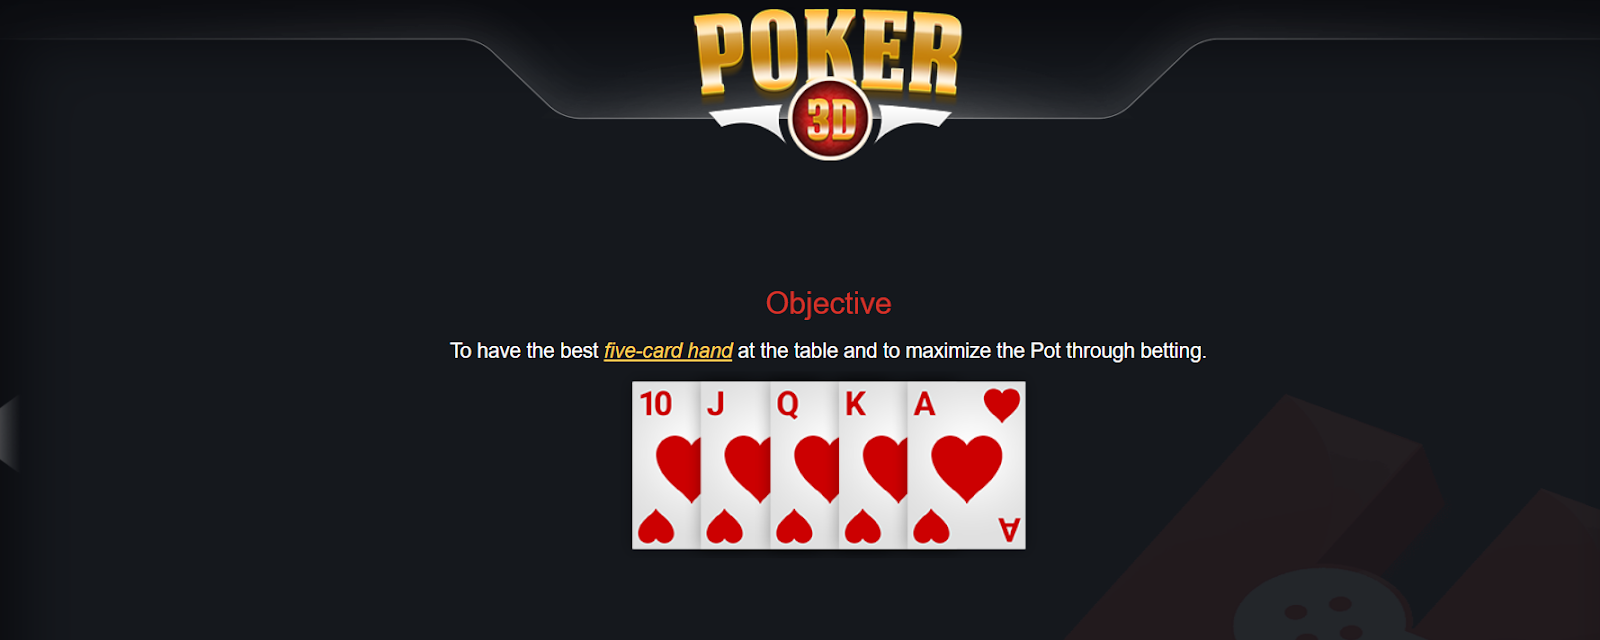 Poker 3D game objective